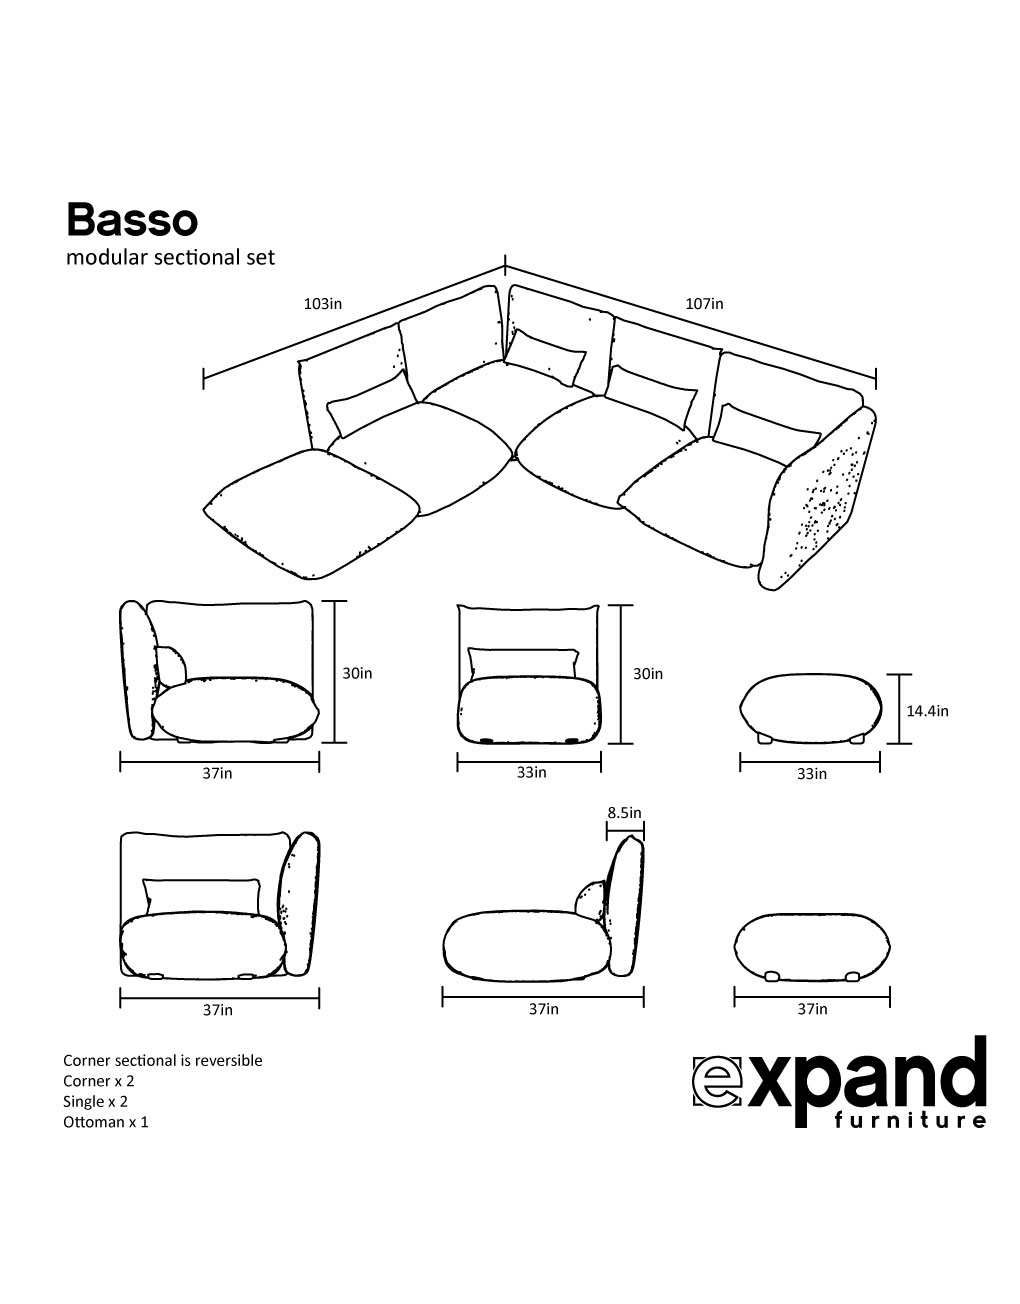 Amazing Basso Modular Low Profile Sectional Sofa Set Theyellowbook Wood Chair Design Ideas Theyellowbookinfo